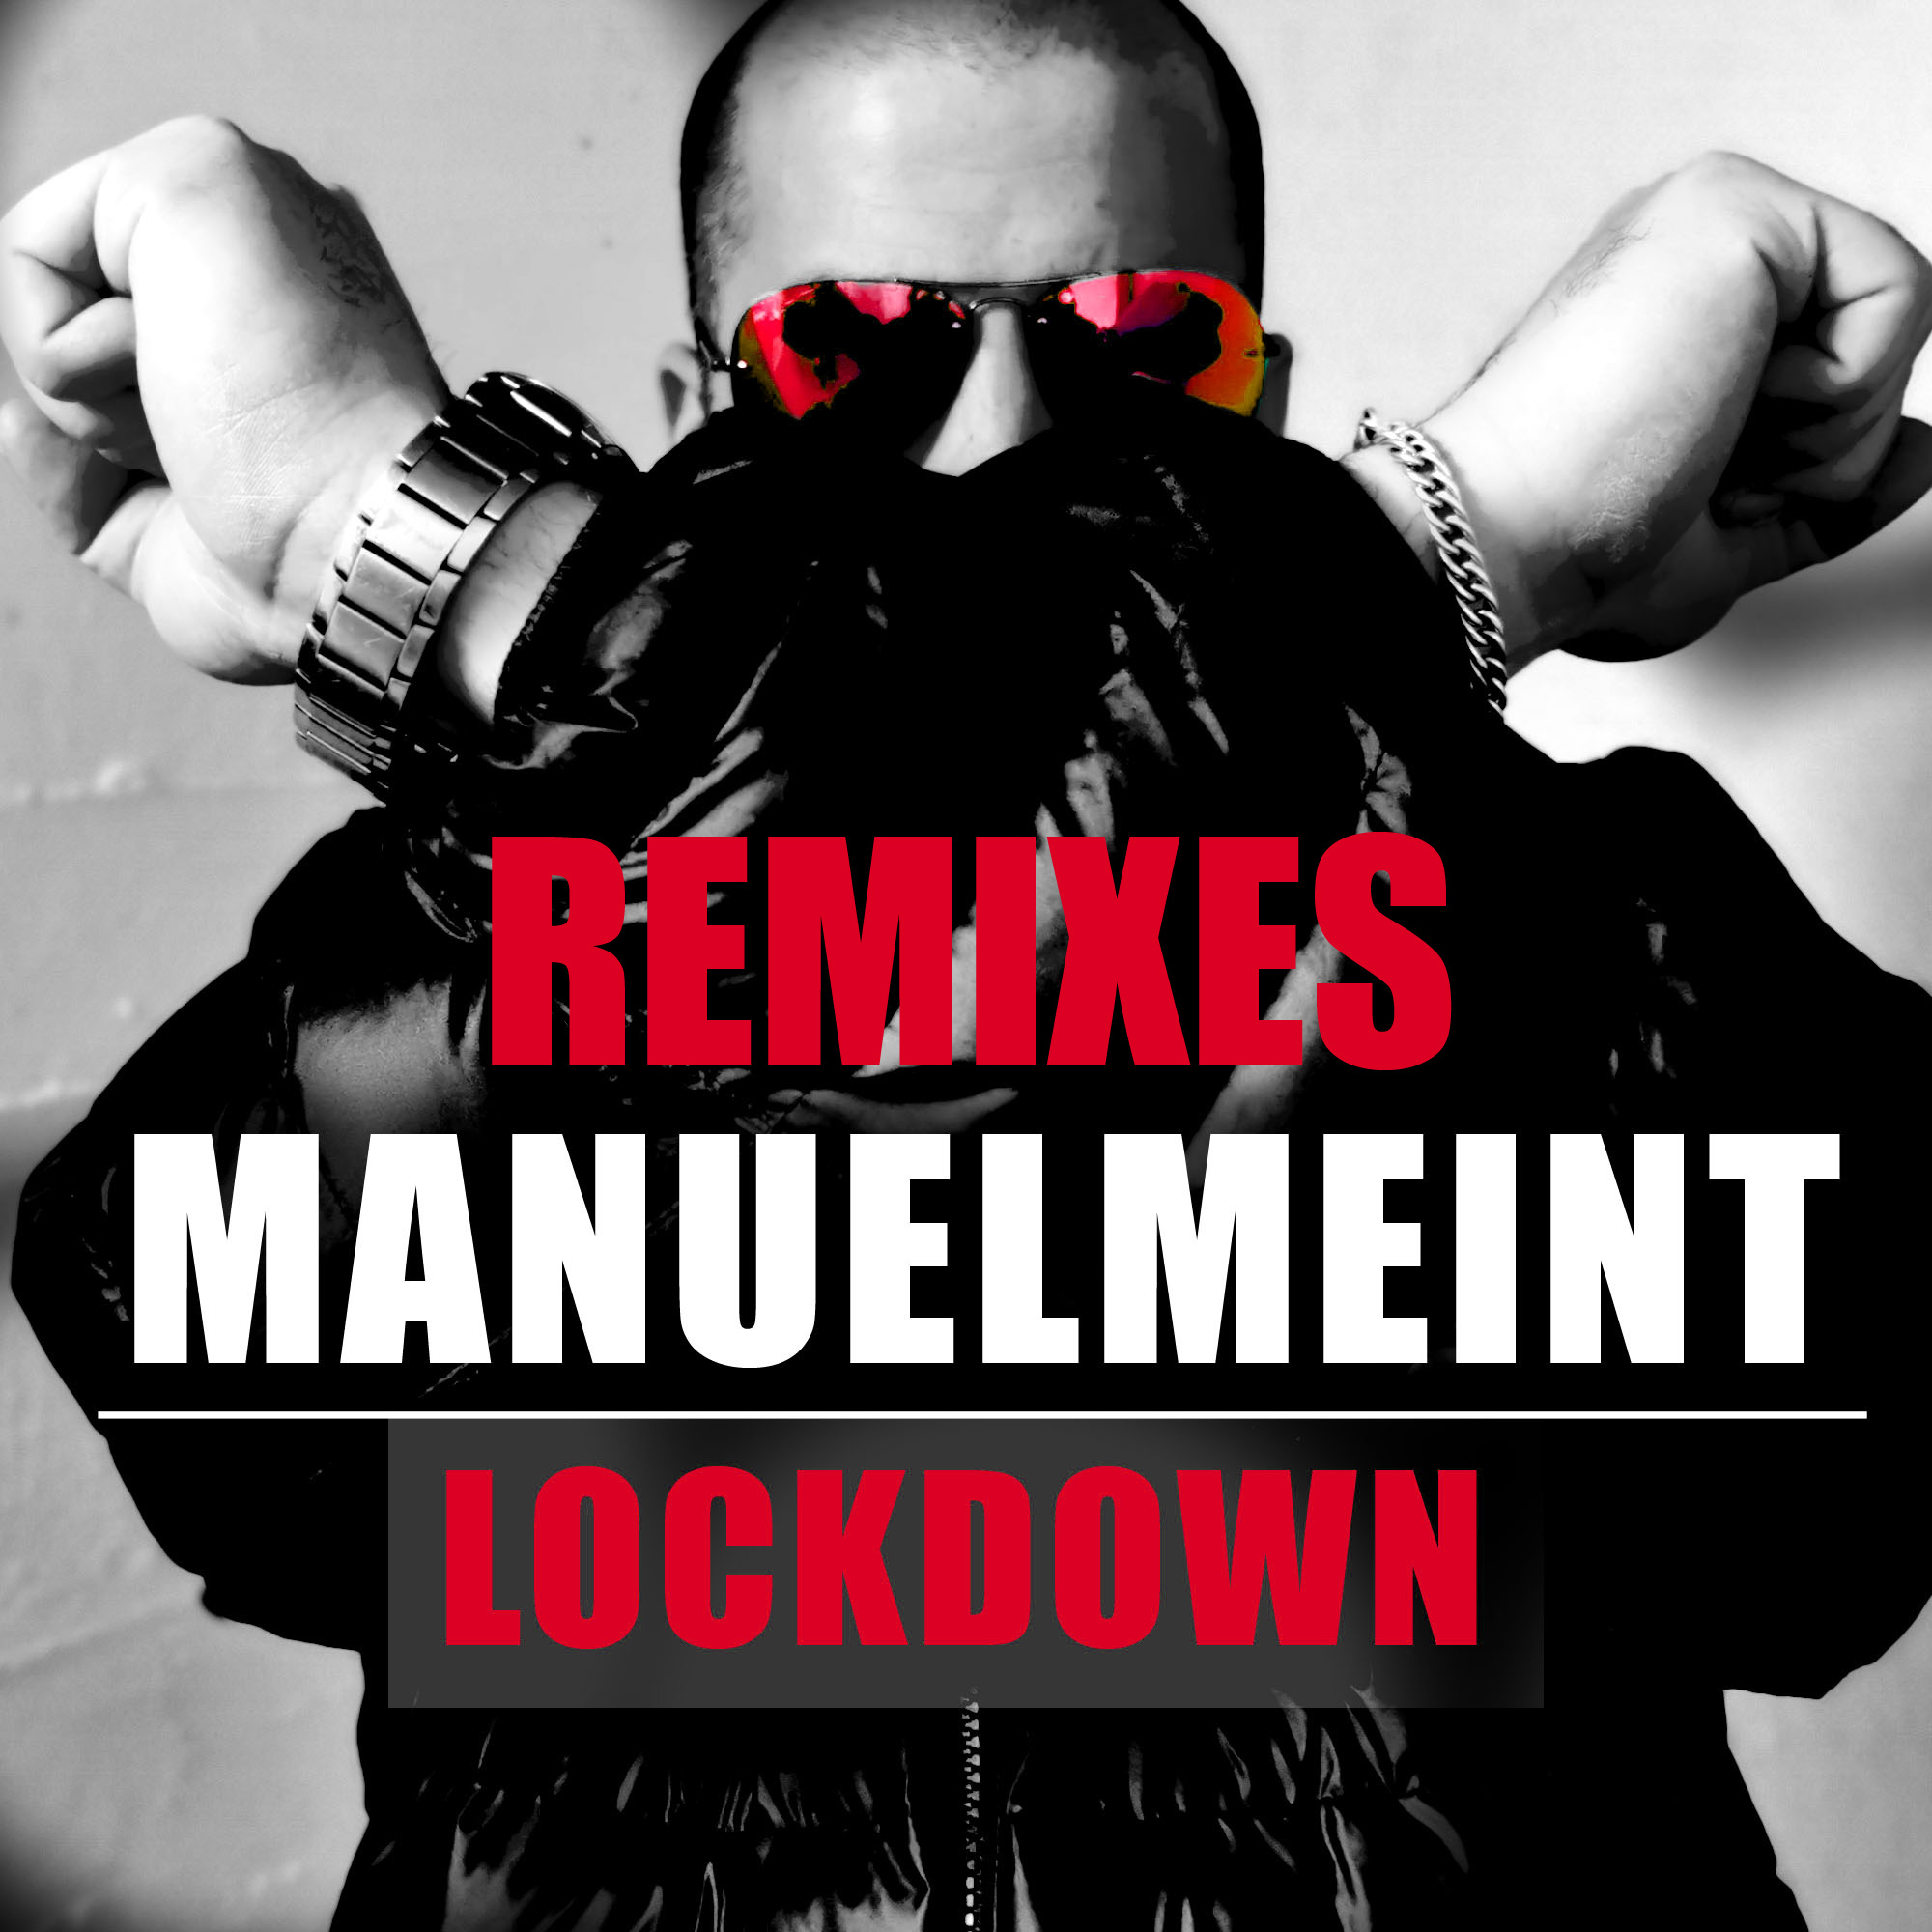 Remix Manuelmeint - Lockdown